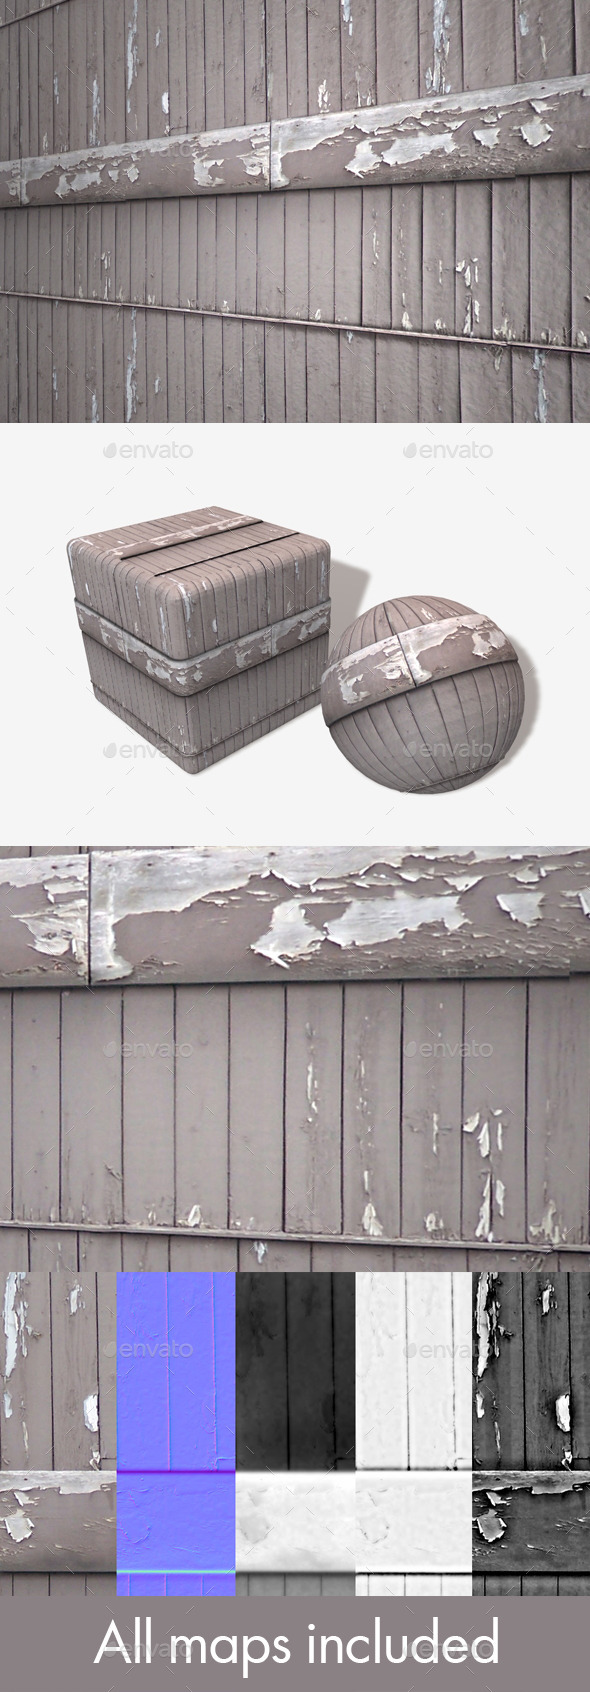 Rickety Wooden Building Seamless Texture - 3DOcean Item for Sale